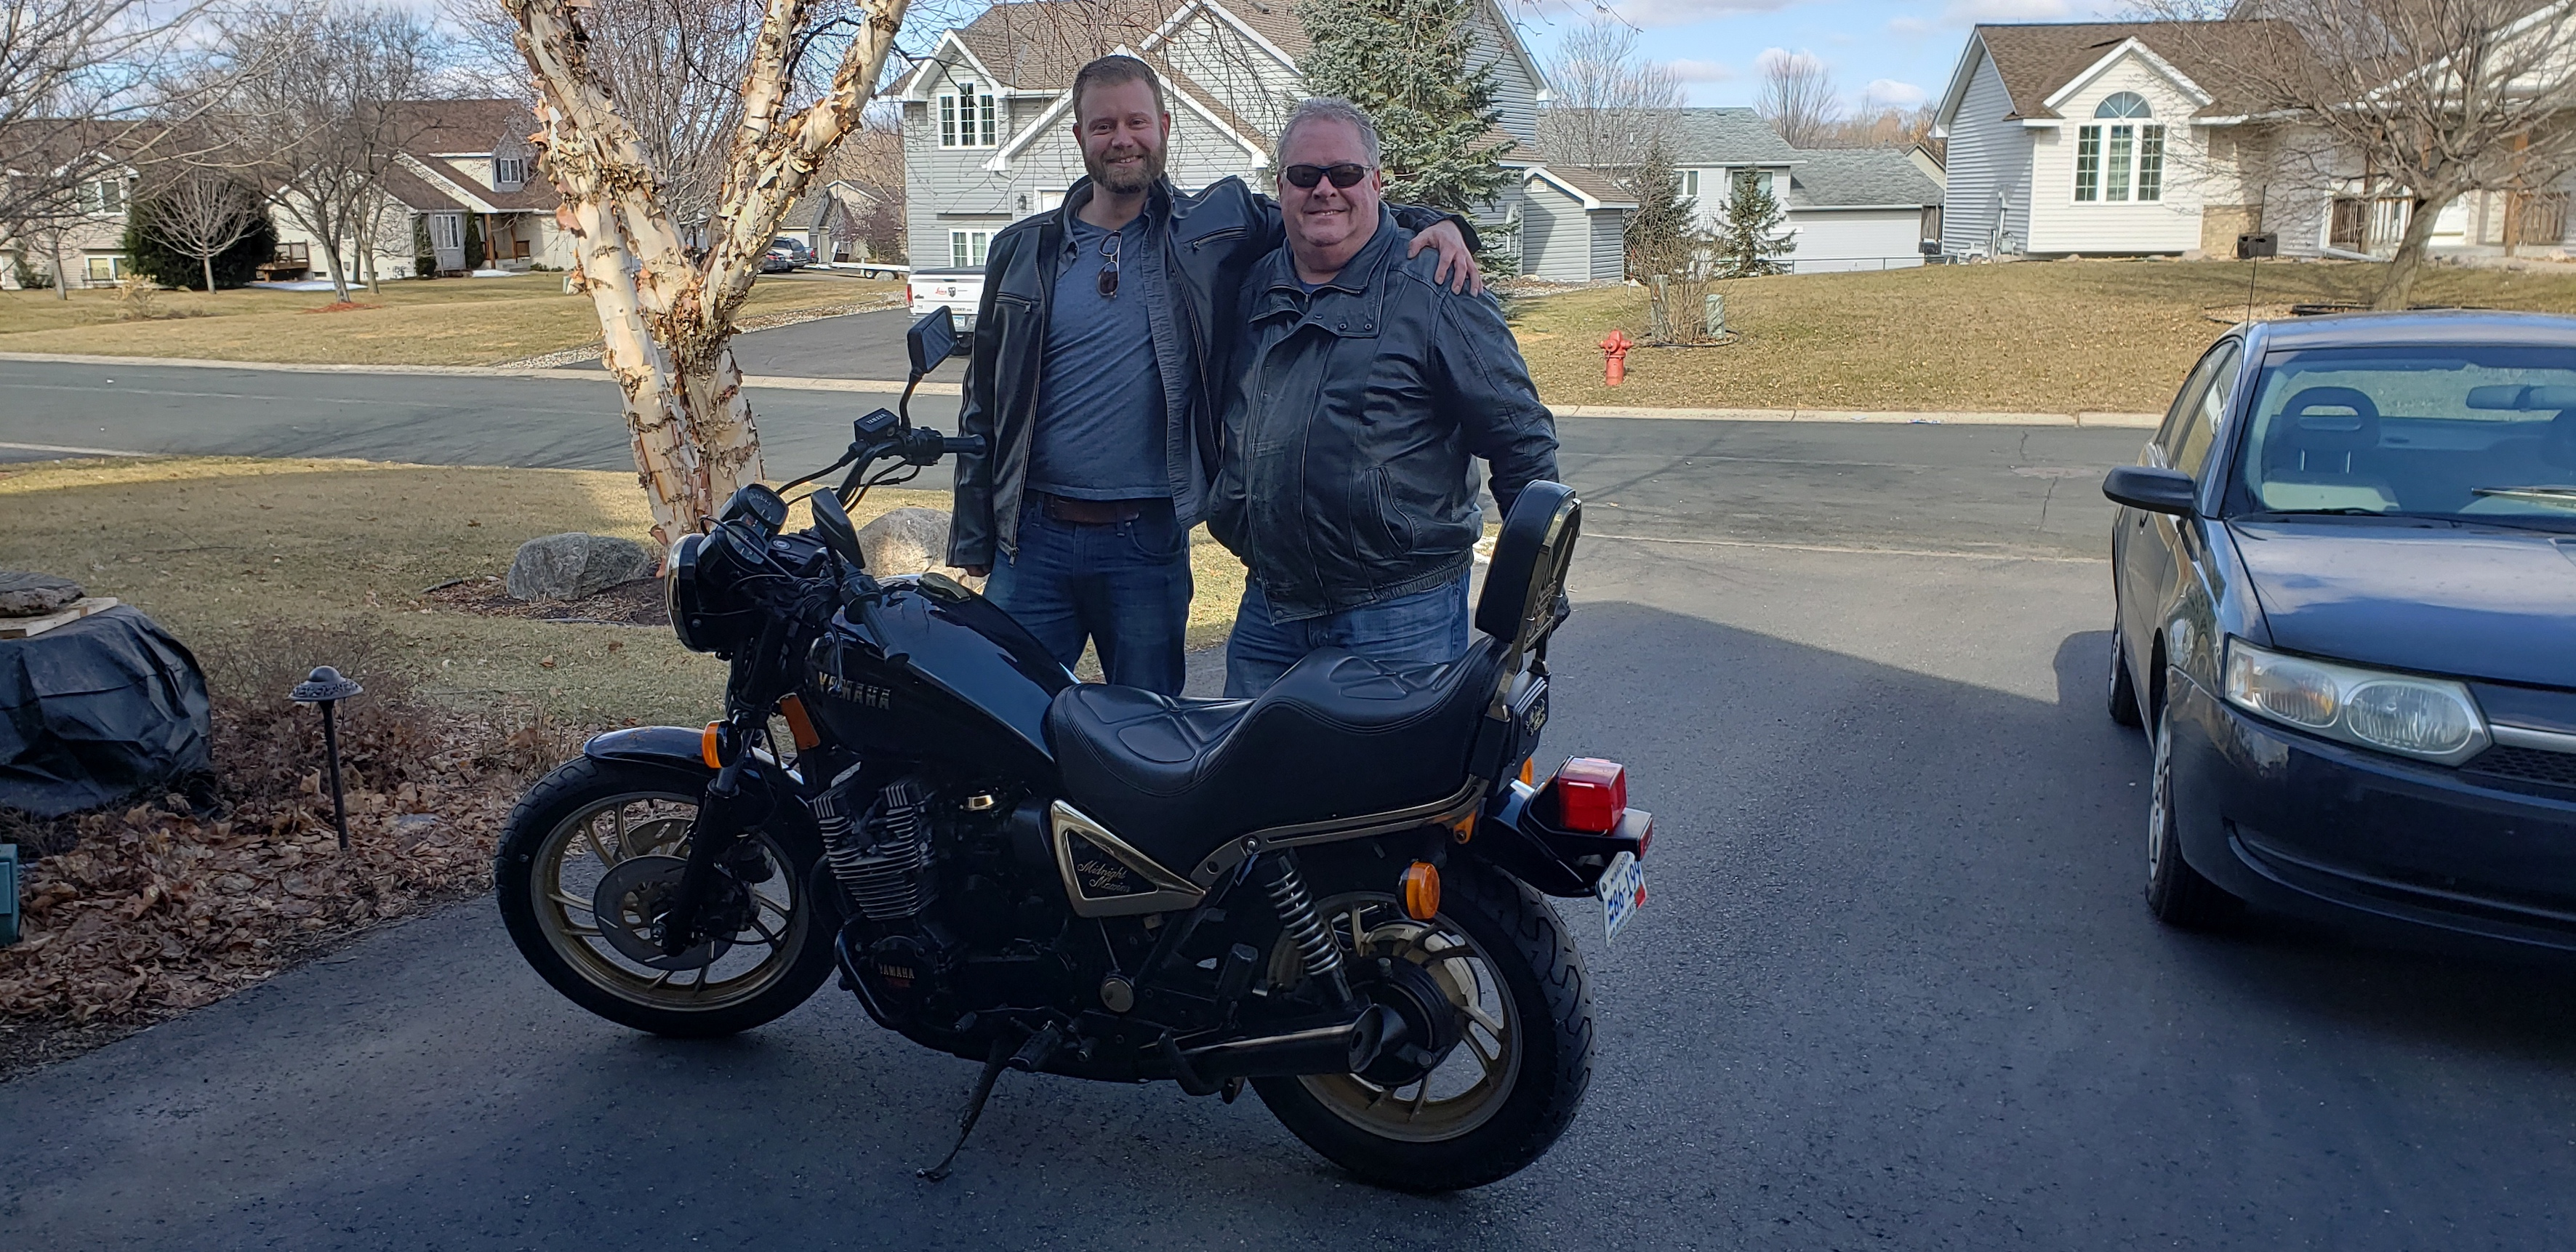 Jimmy Tarpey and his dad Jim Tarpey next to the motorcycle